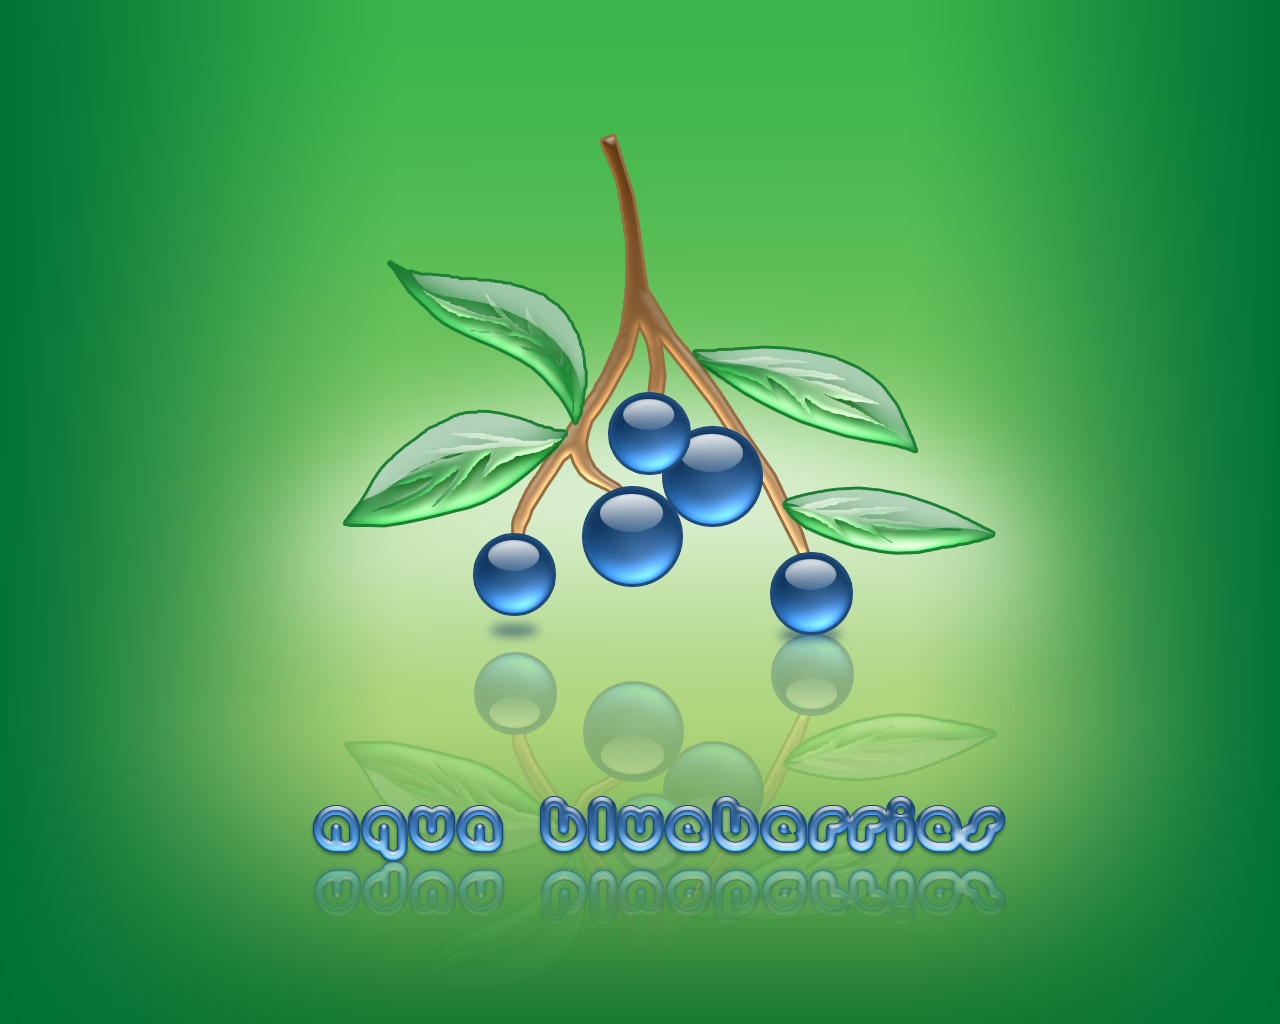 aqua blueberries 02